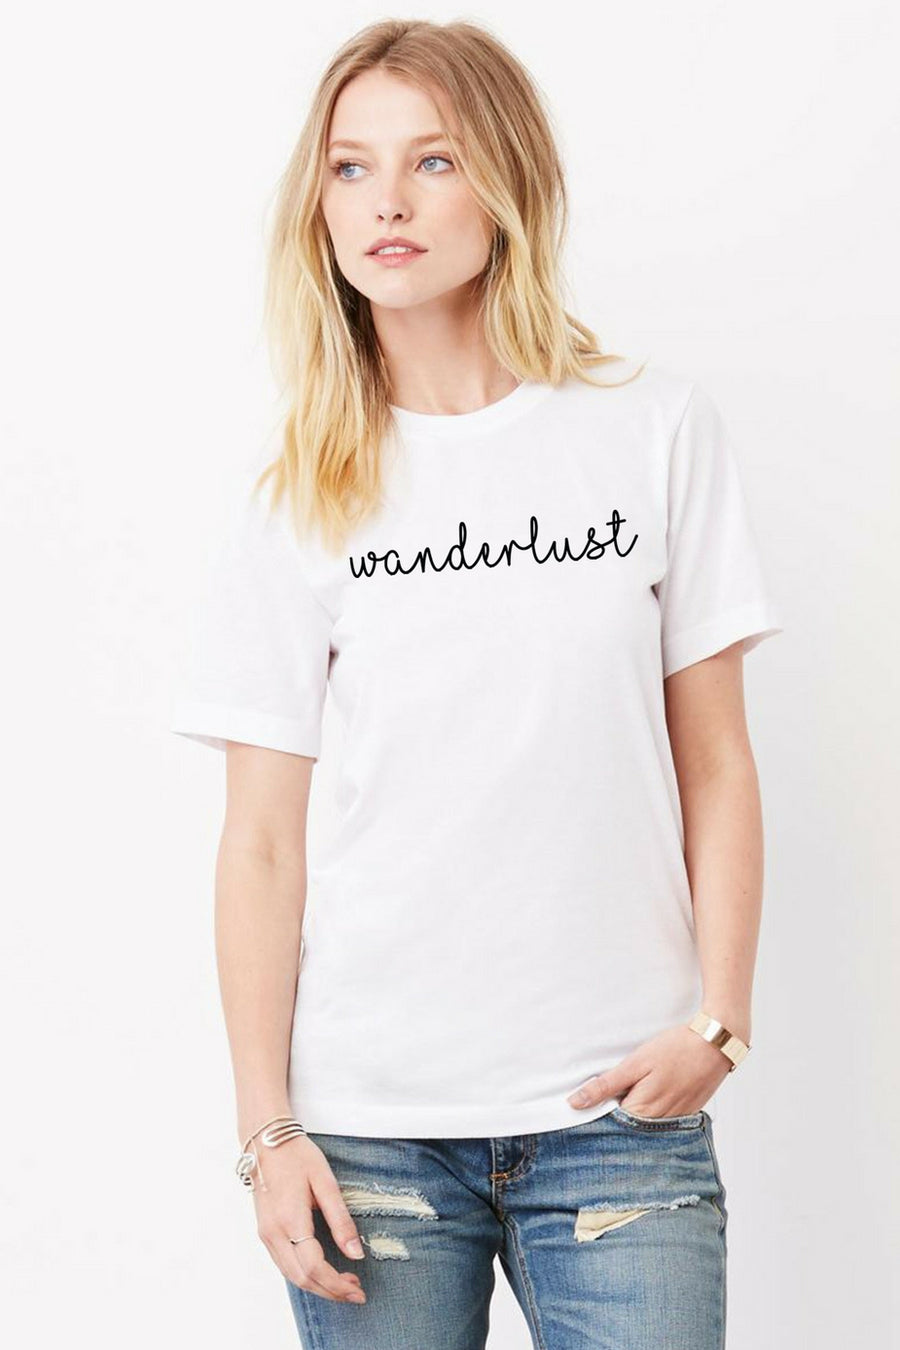 Six + Row Wanderlust Graphic Gray Tee